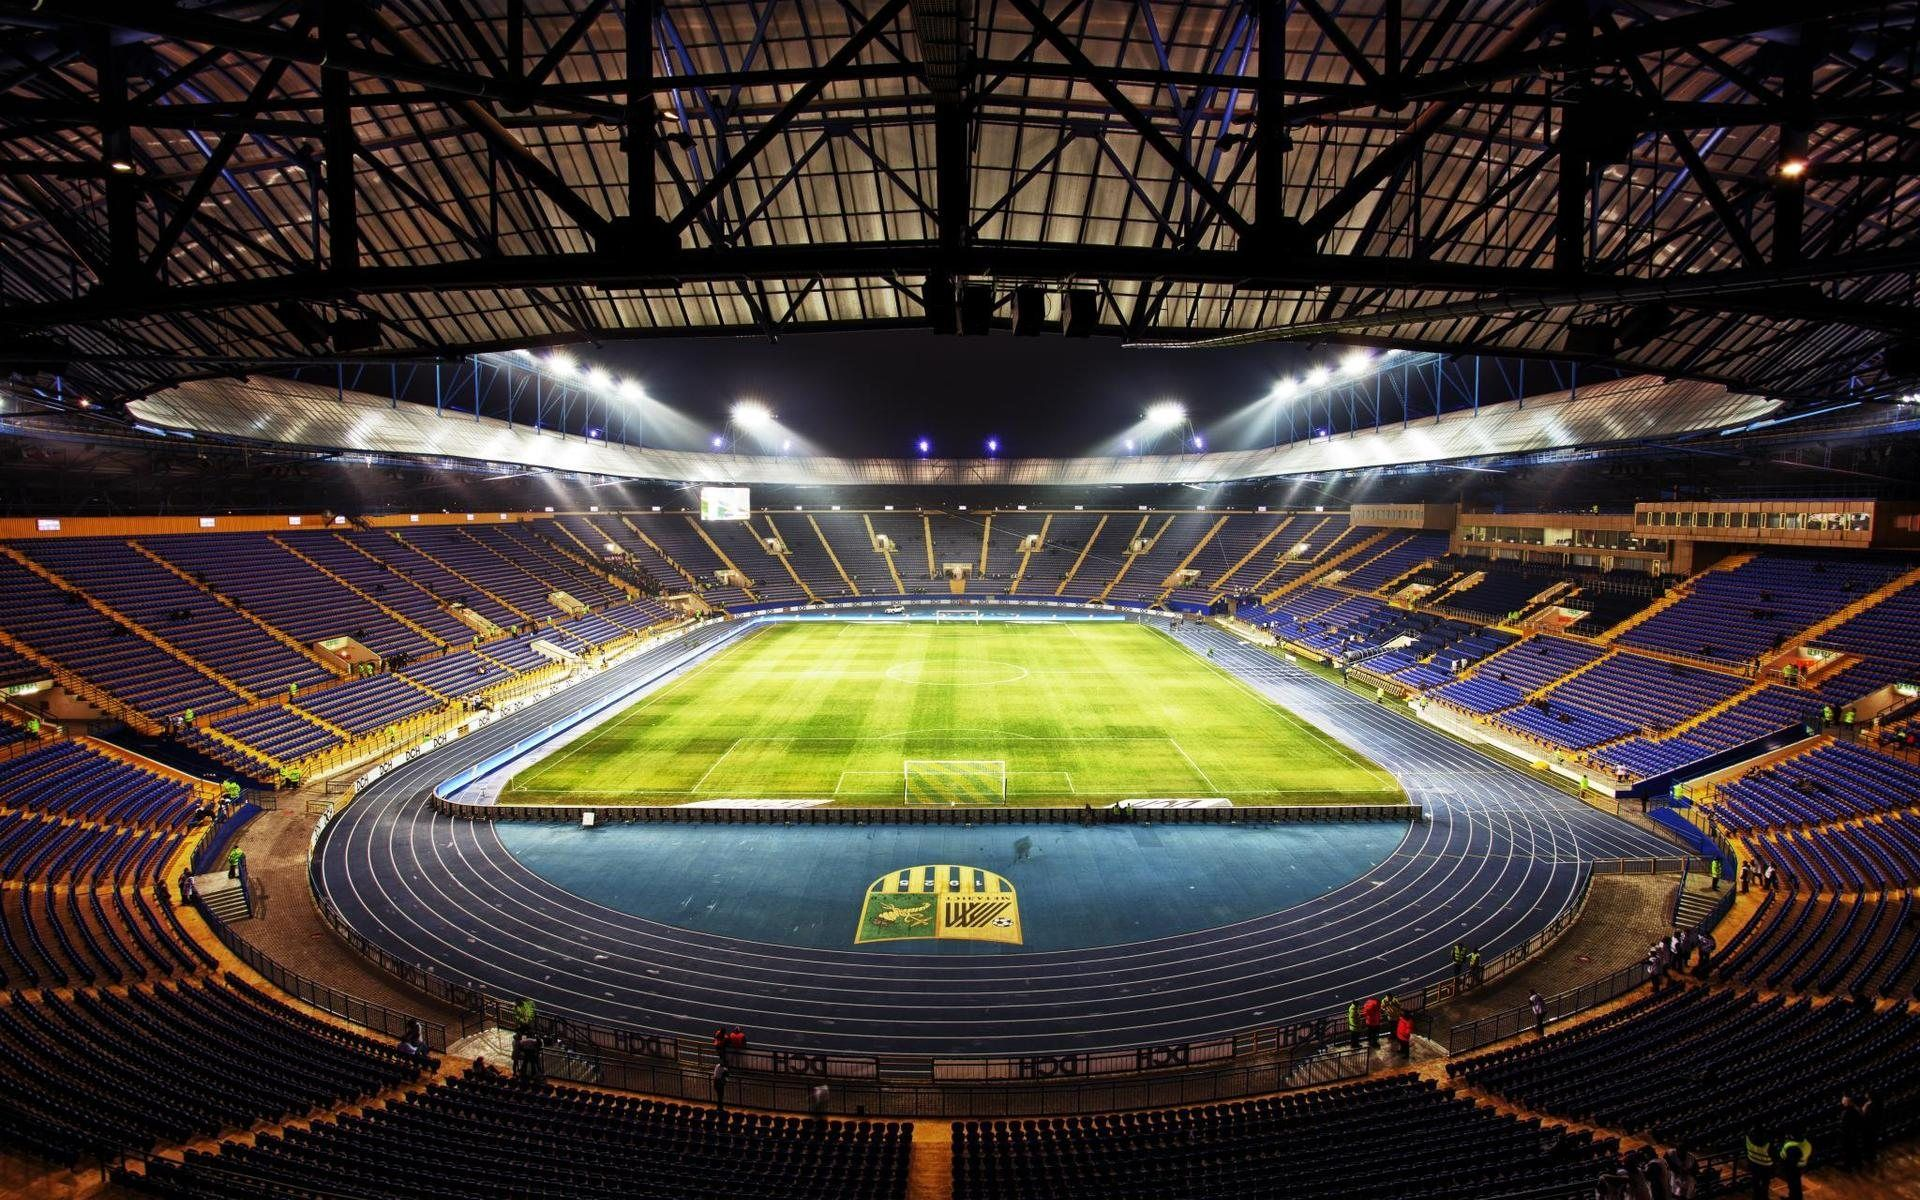 Metalist Stadium Hd Wallpaper 999hdwallpaper